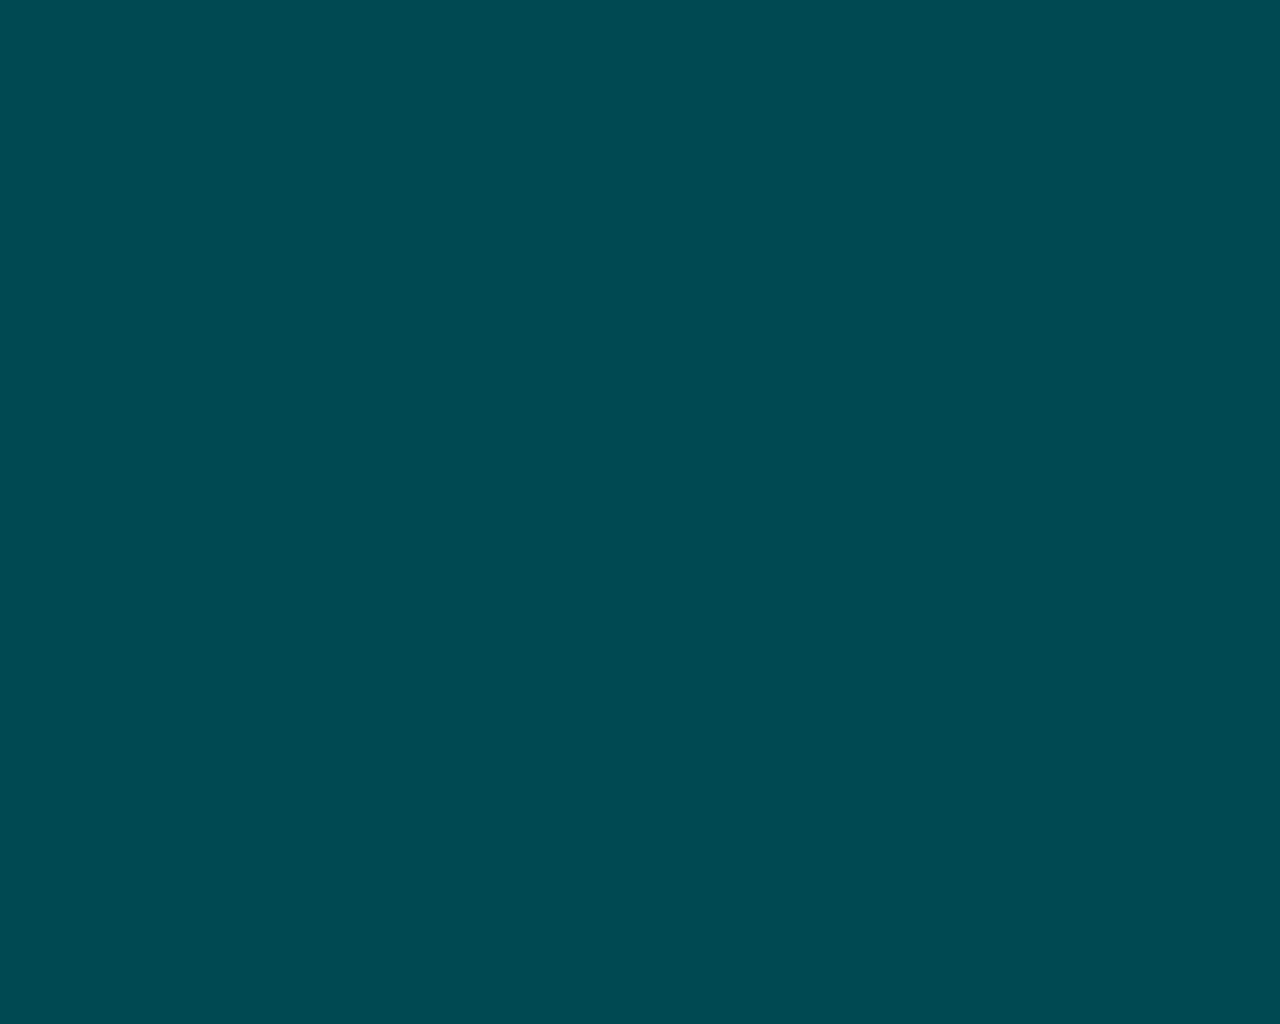 1280x1024 Midnight Green Solid Color Background